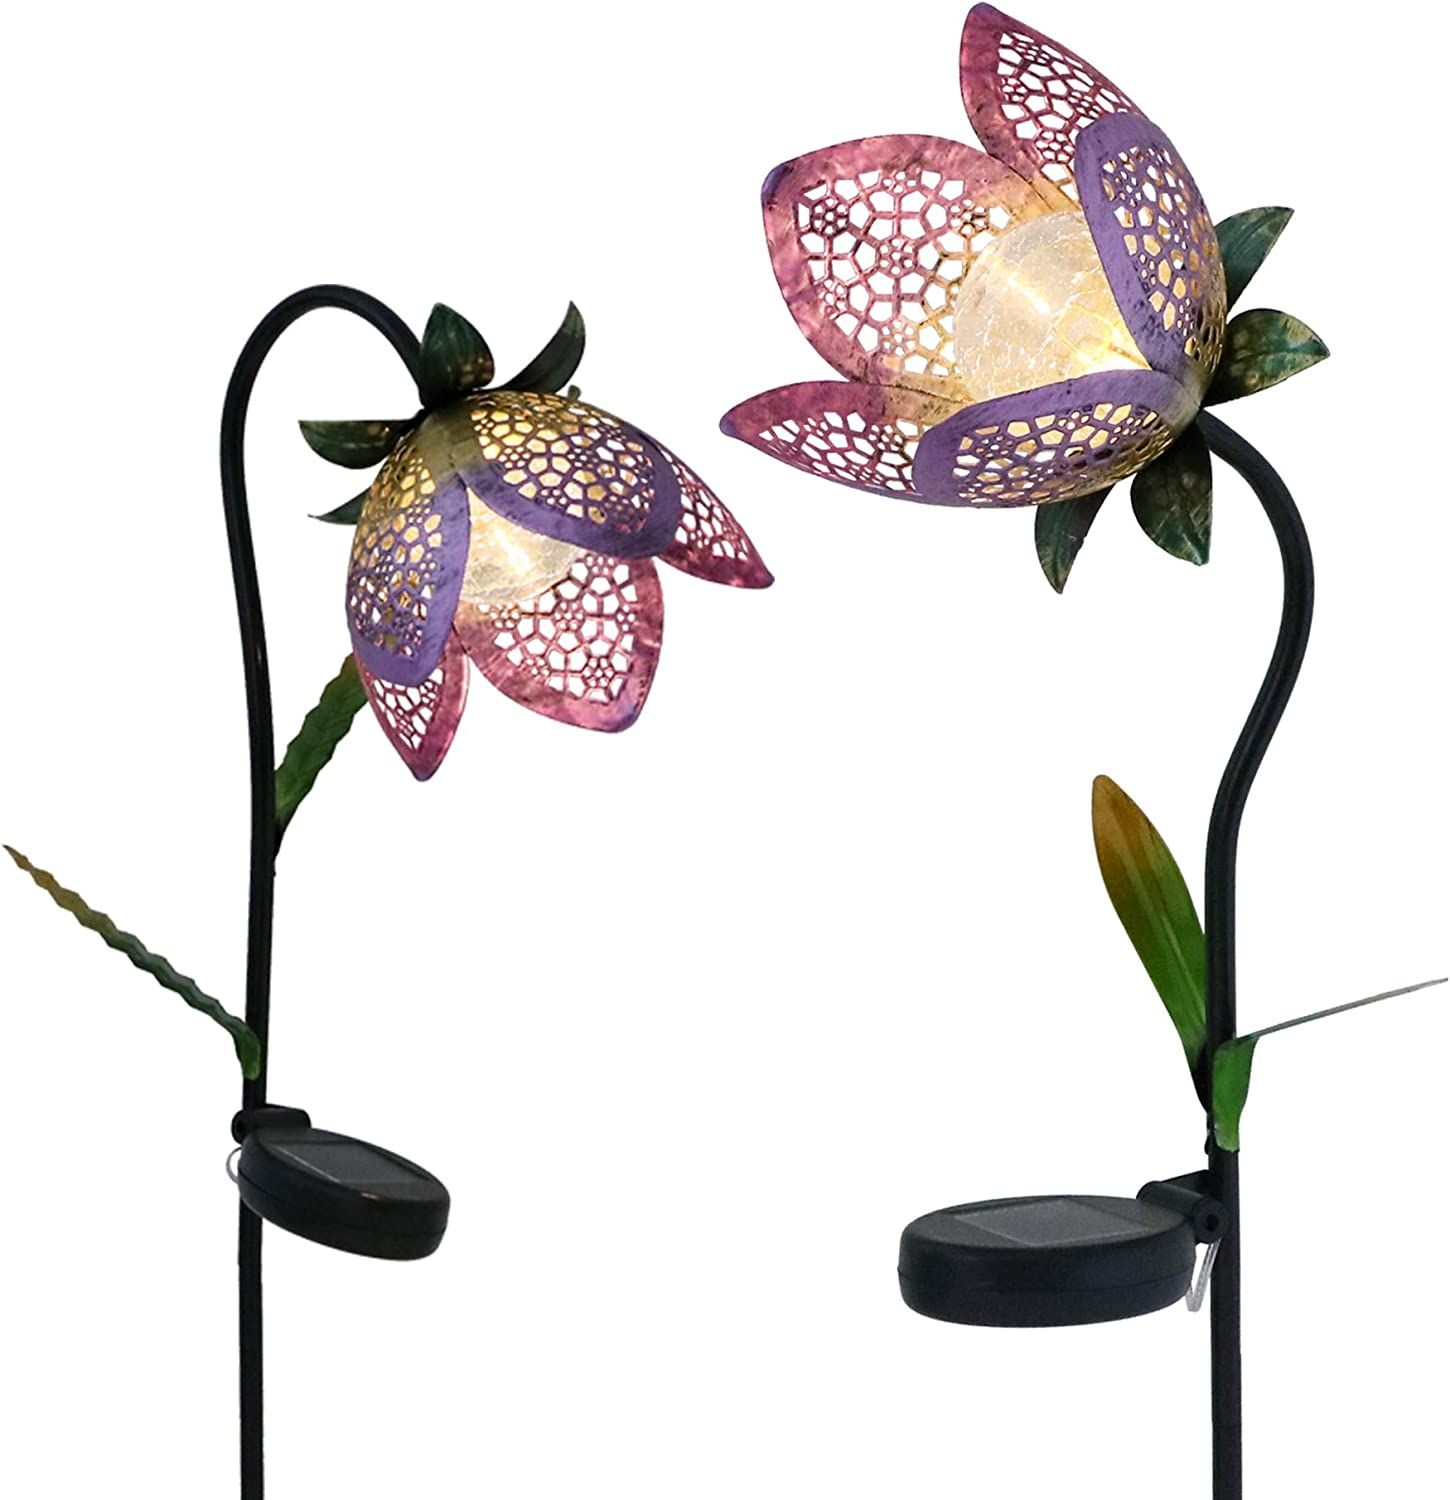 TERESA'S COLLECTIONS 27-29.5 inch 2 Pack Metal Solar Flower Lights, Tulip Solar Garden Lights Flower Stake with Crackle Glass Ball Lights for Outdoor Patio Yard Decorations